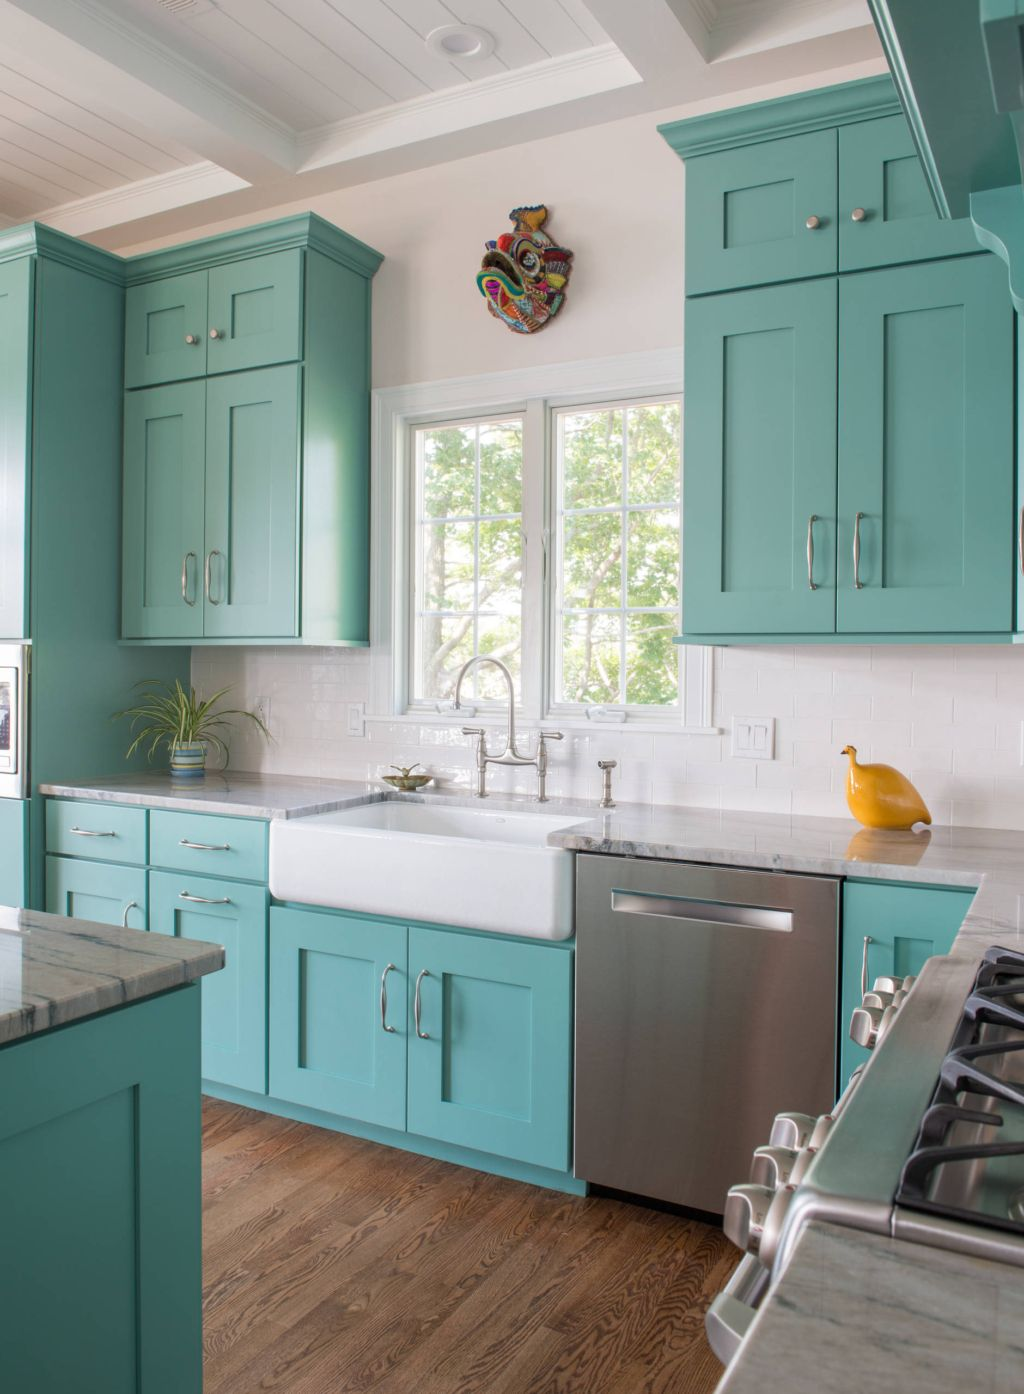 Mikayla Valois Riverhead Building Supply Turquoise Kitchen Cabinets Rustic Kitchen Cabinets Kitchen Cabinet Design